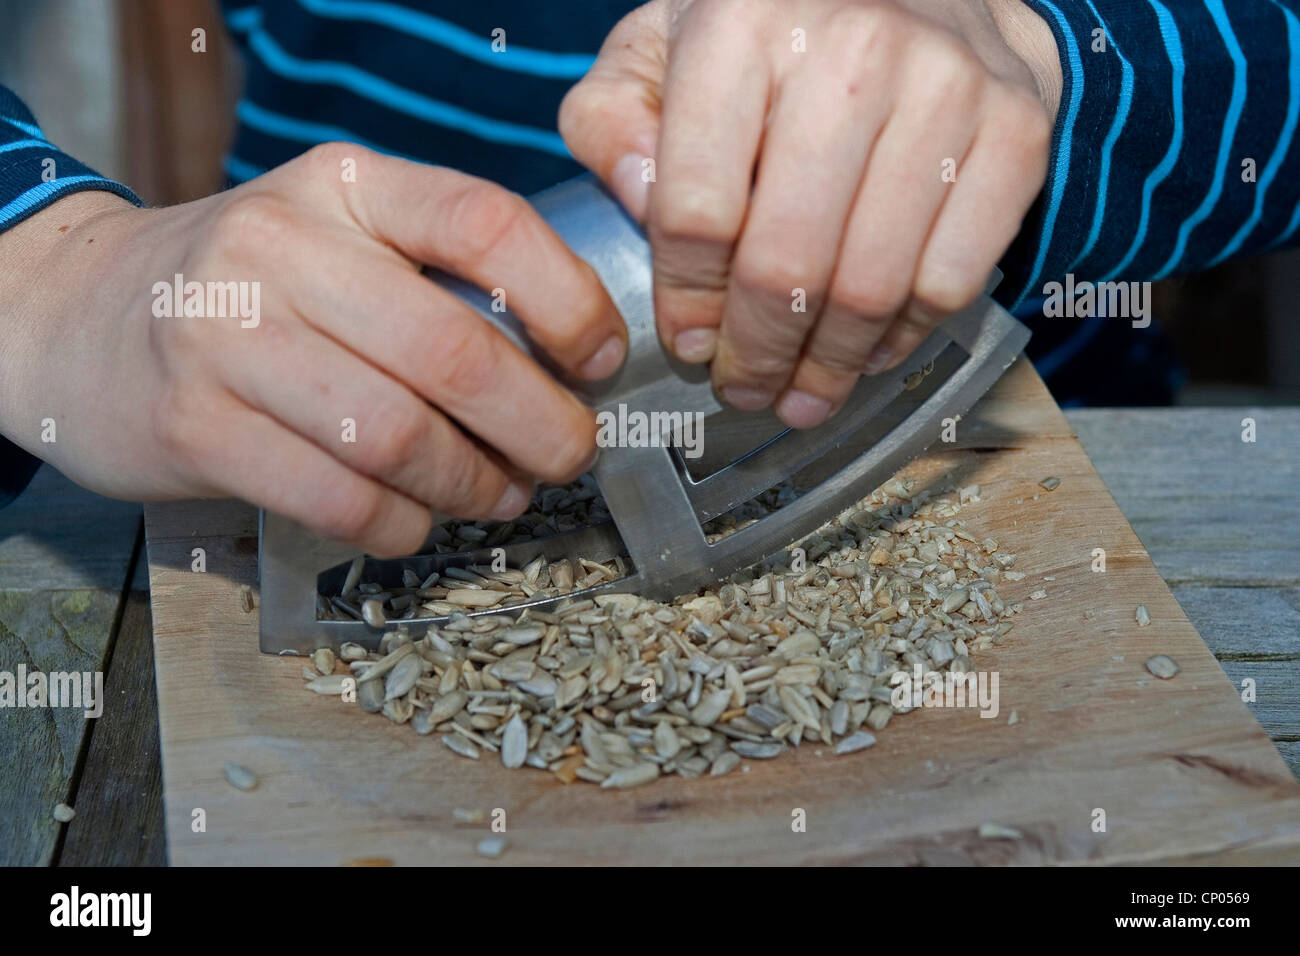 boy making pesto from self-collected walnuts and sunflower seeds, olive oil and parmesan cheese, sunflower seeds - Stock Image